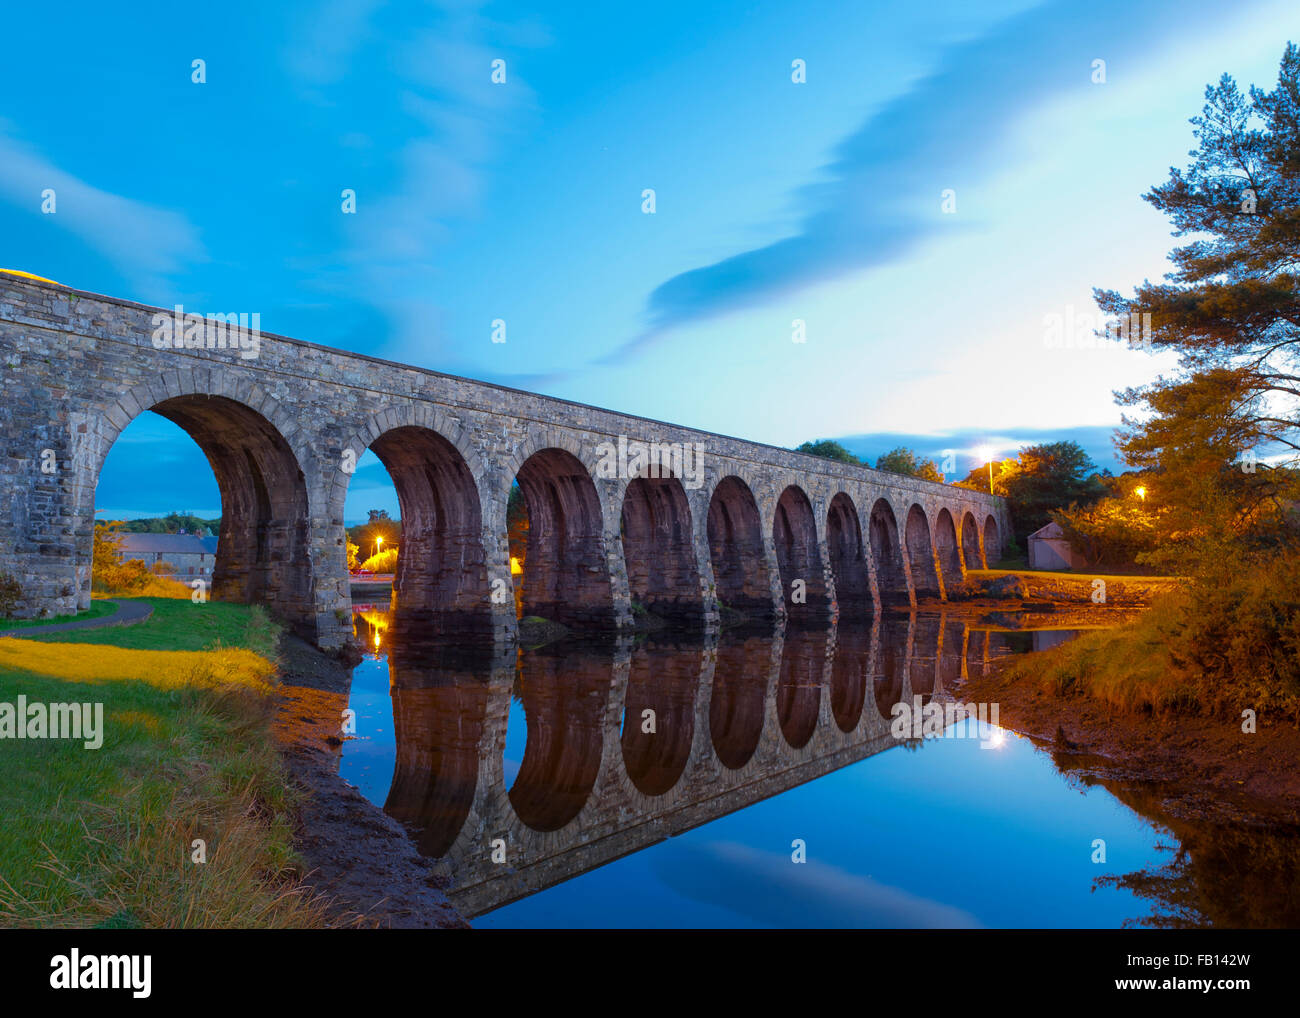 The famous 12 Arch Bridge in Ballydehob, West Cork, Ireland at sunset with copy space. - Stock Image